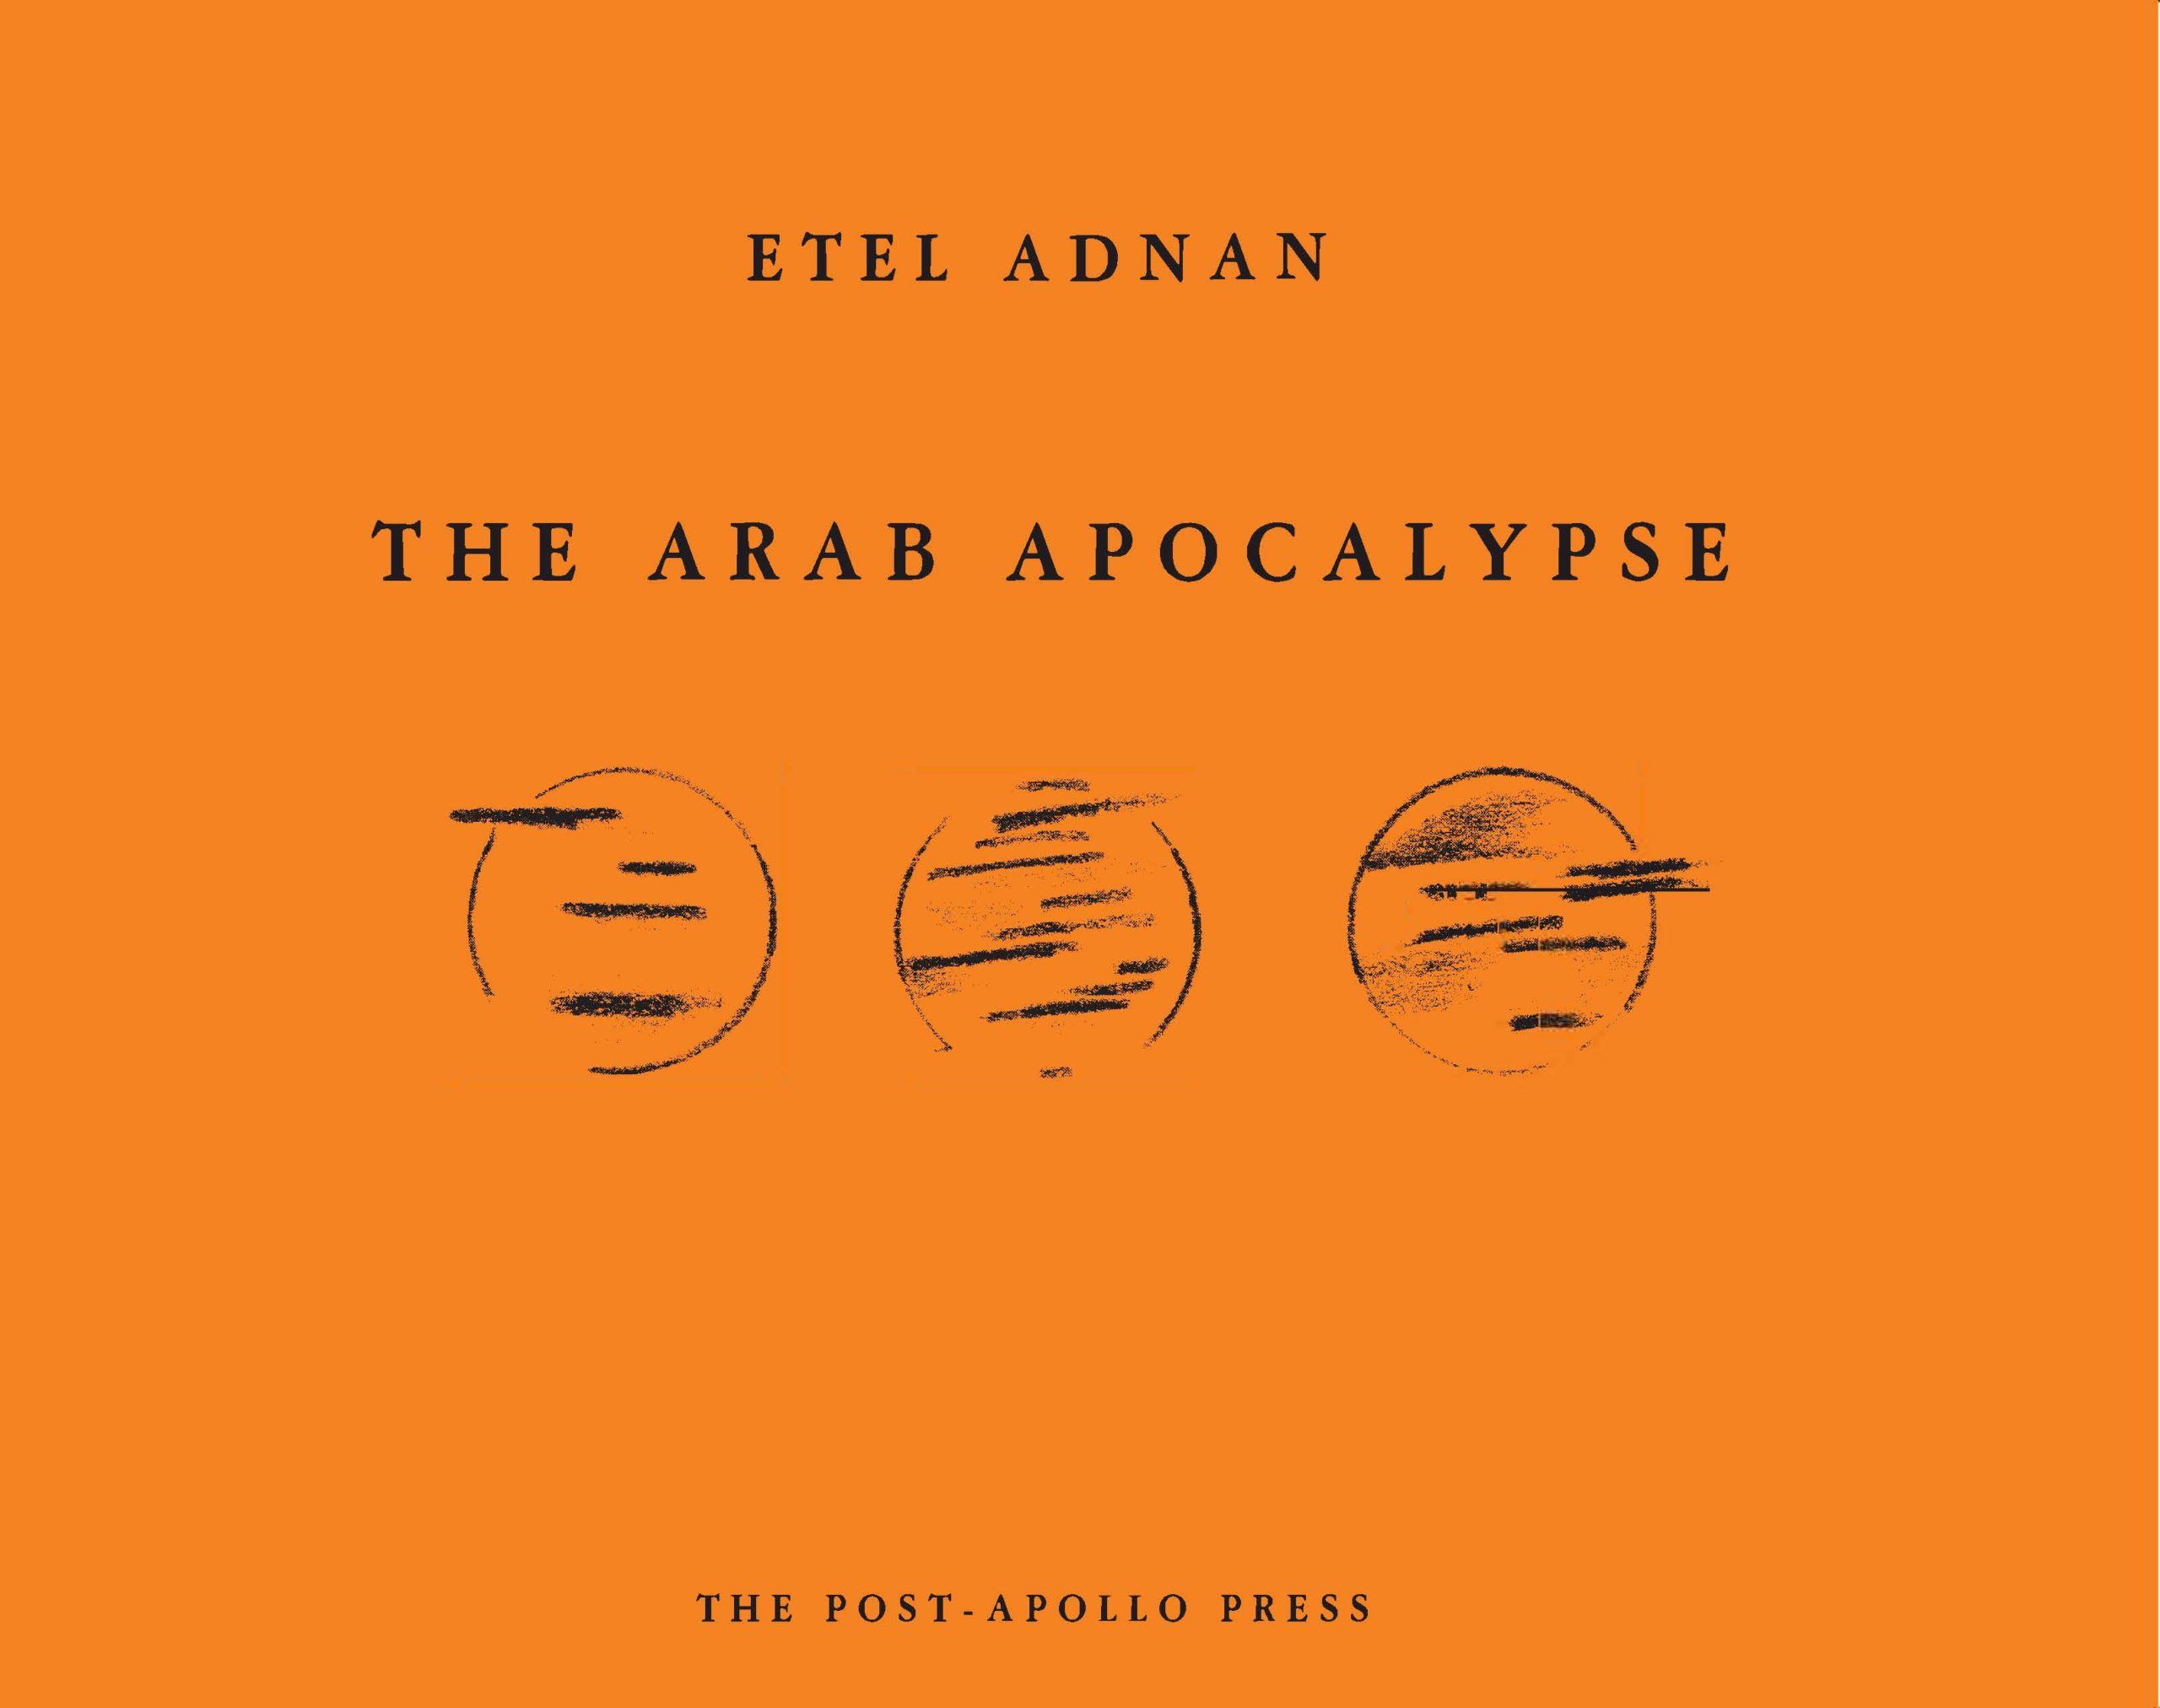 The Arab Apocalypse front cover image: bright orange background with a drawing of three broken, black circles lined up horizontally, with black streaks interrupting them. The circles could be representations of the sun. Text on the cover reads: Etel Adnan, The Arab Apocalypse, The Post-Apollo Press.